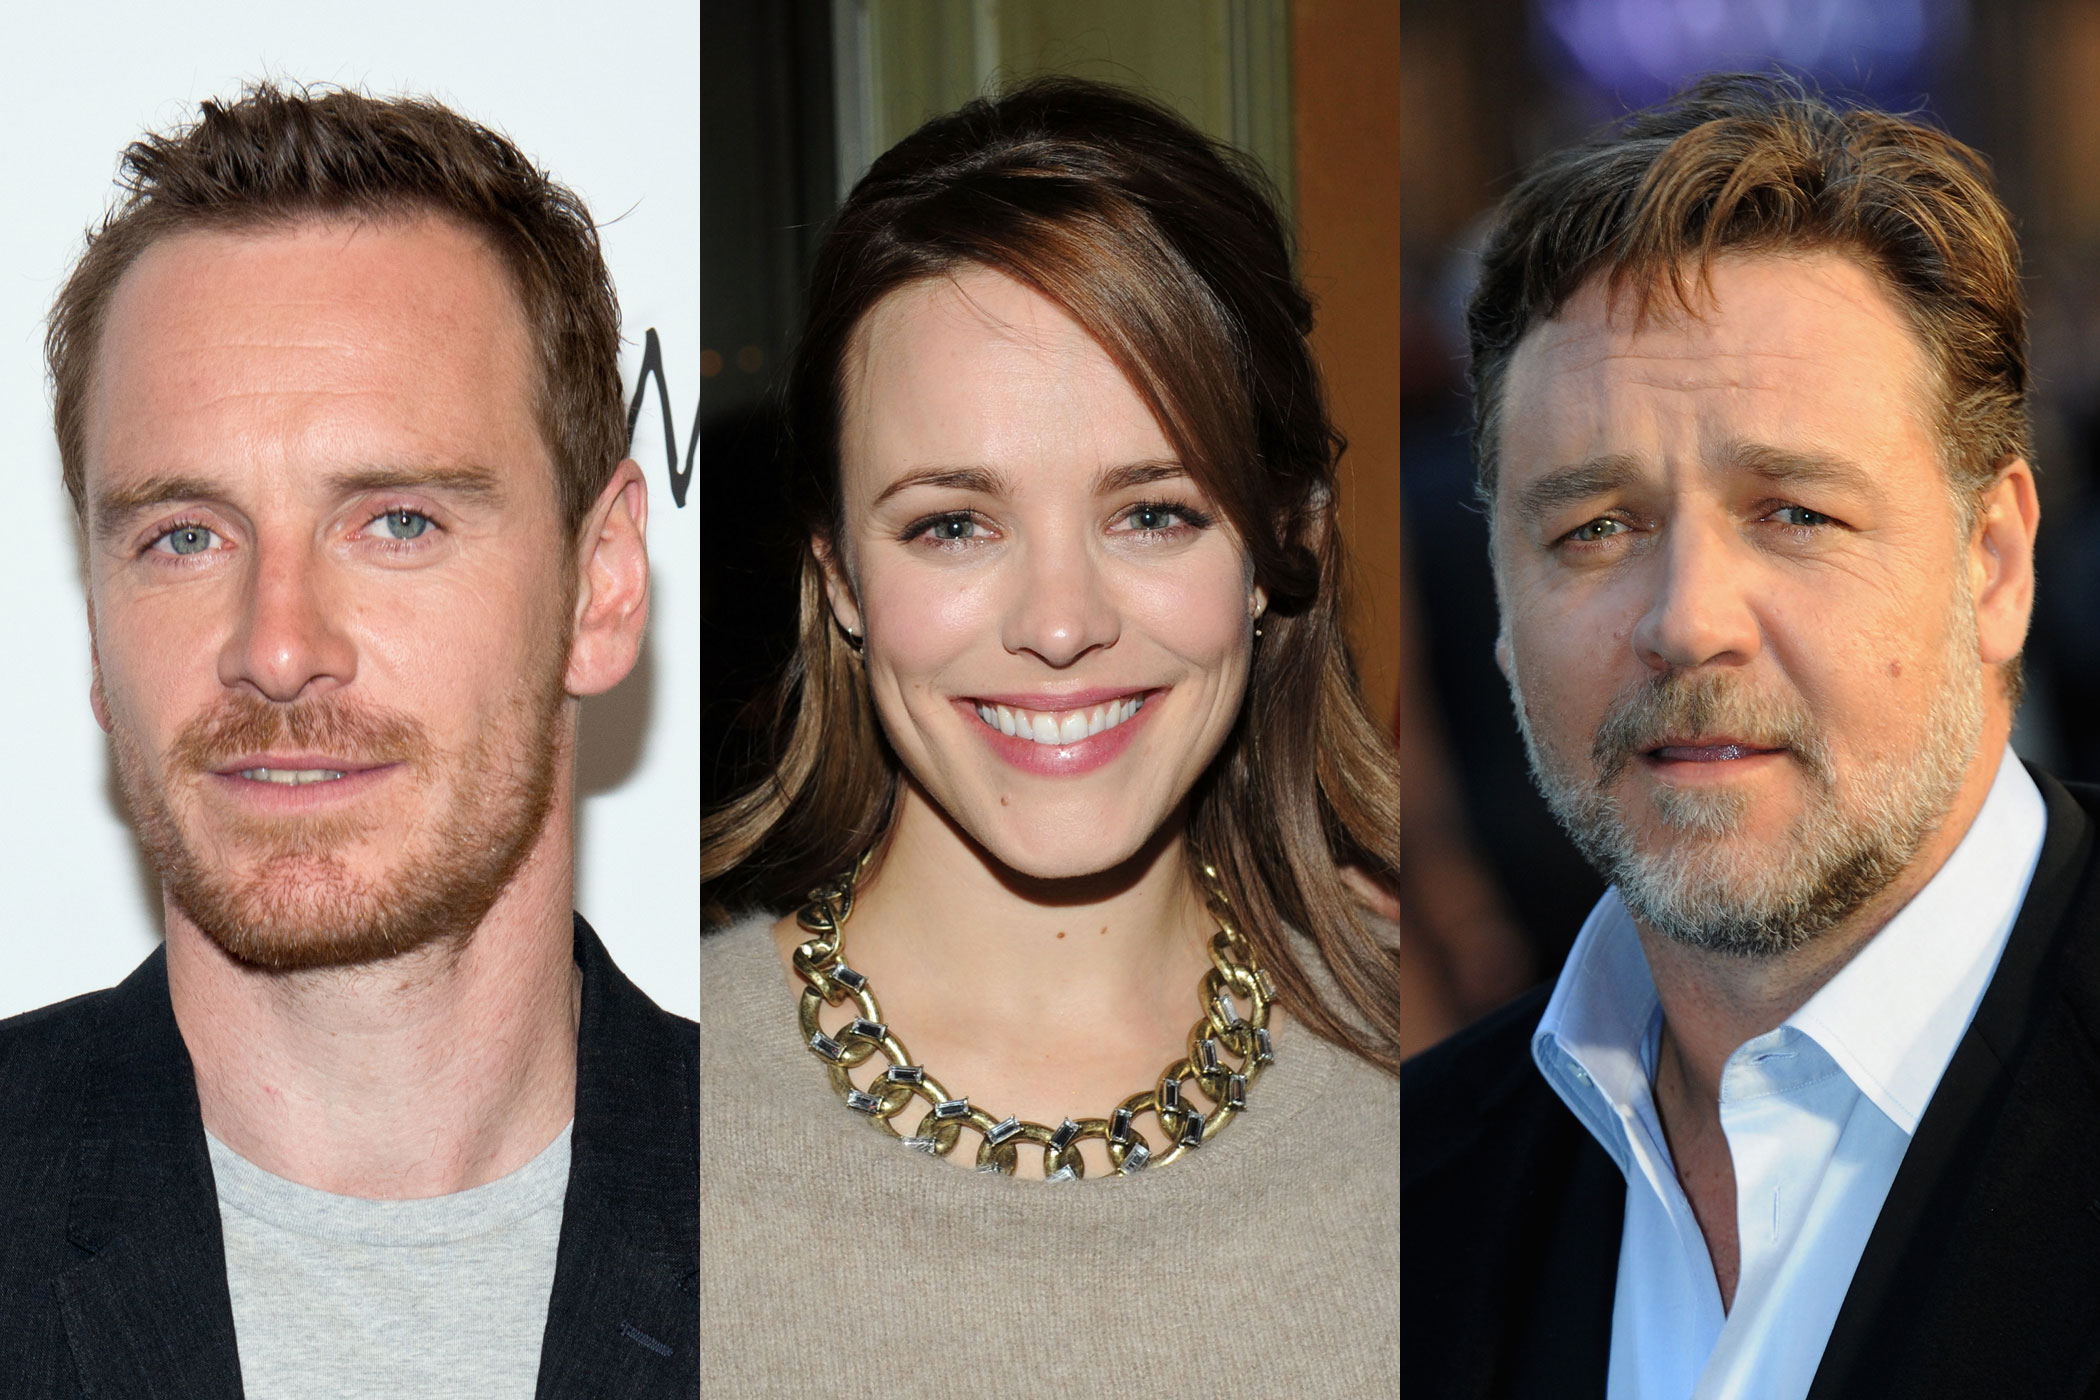 From left: Michael Fassbender, Rachel McAdams, Russell Crowe